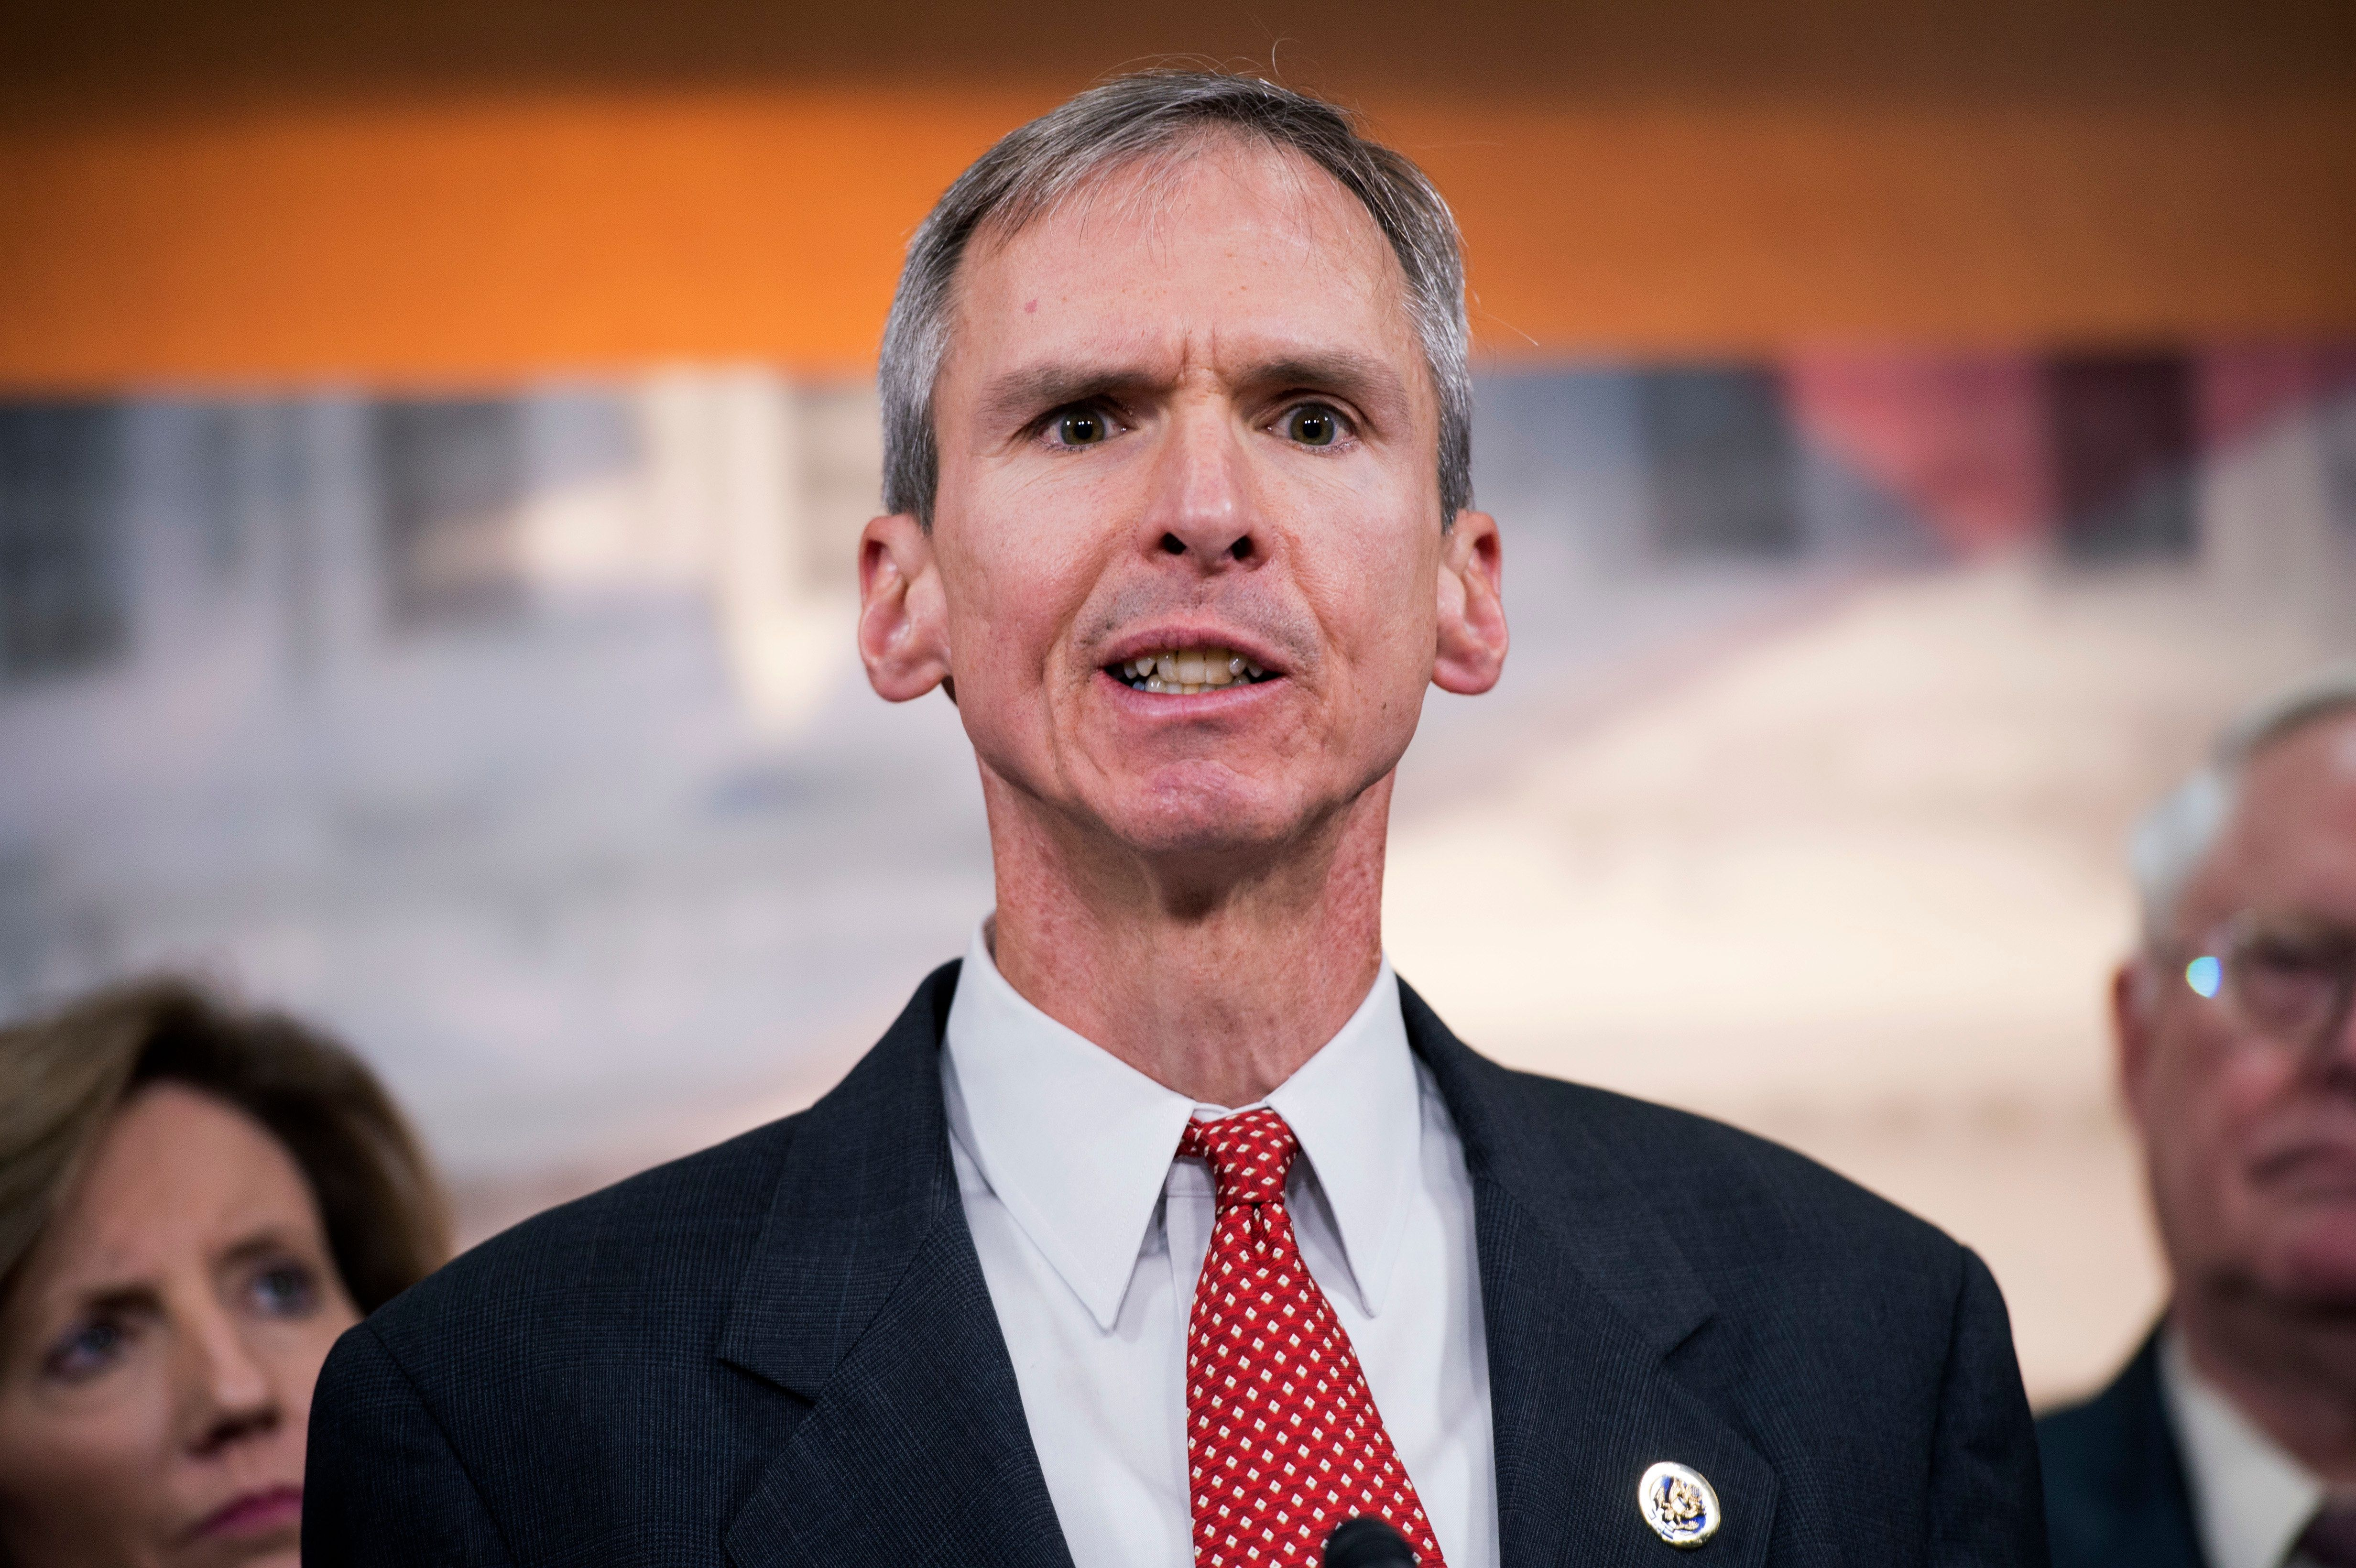 Rep. Dan Lipinski (D-Ill.) has the support of an anti-abortion group in his Democratic primary.